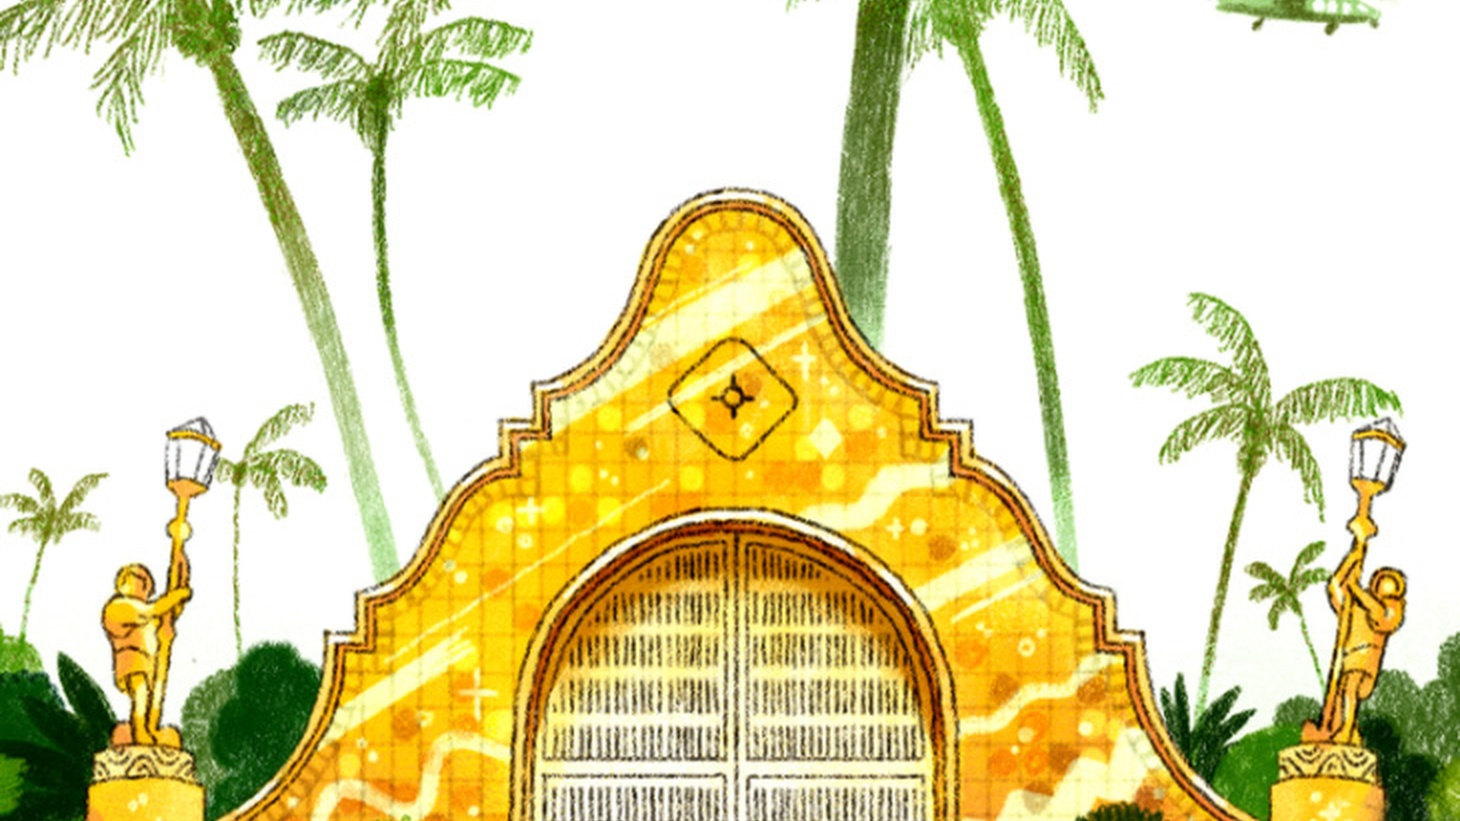 This week on the New Yorker Radio Hour, get a glimpse inside Donald Trump's exclusive club Mar-a-Lago.